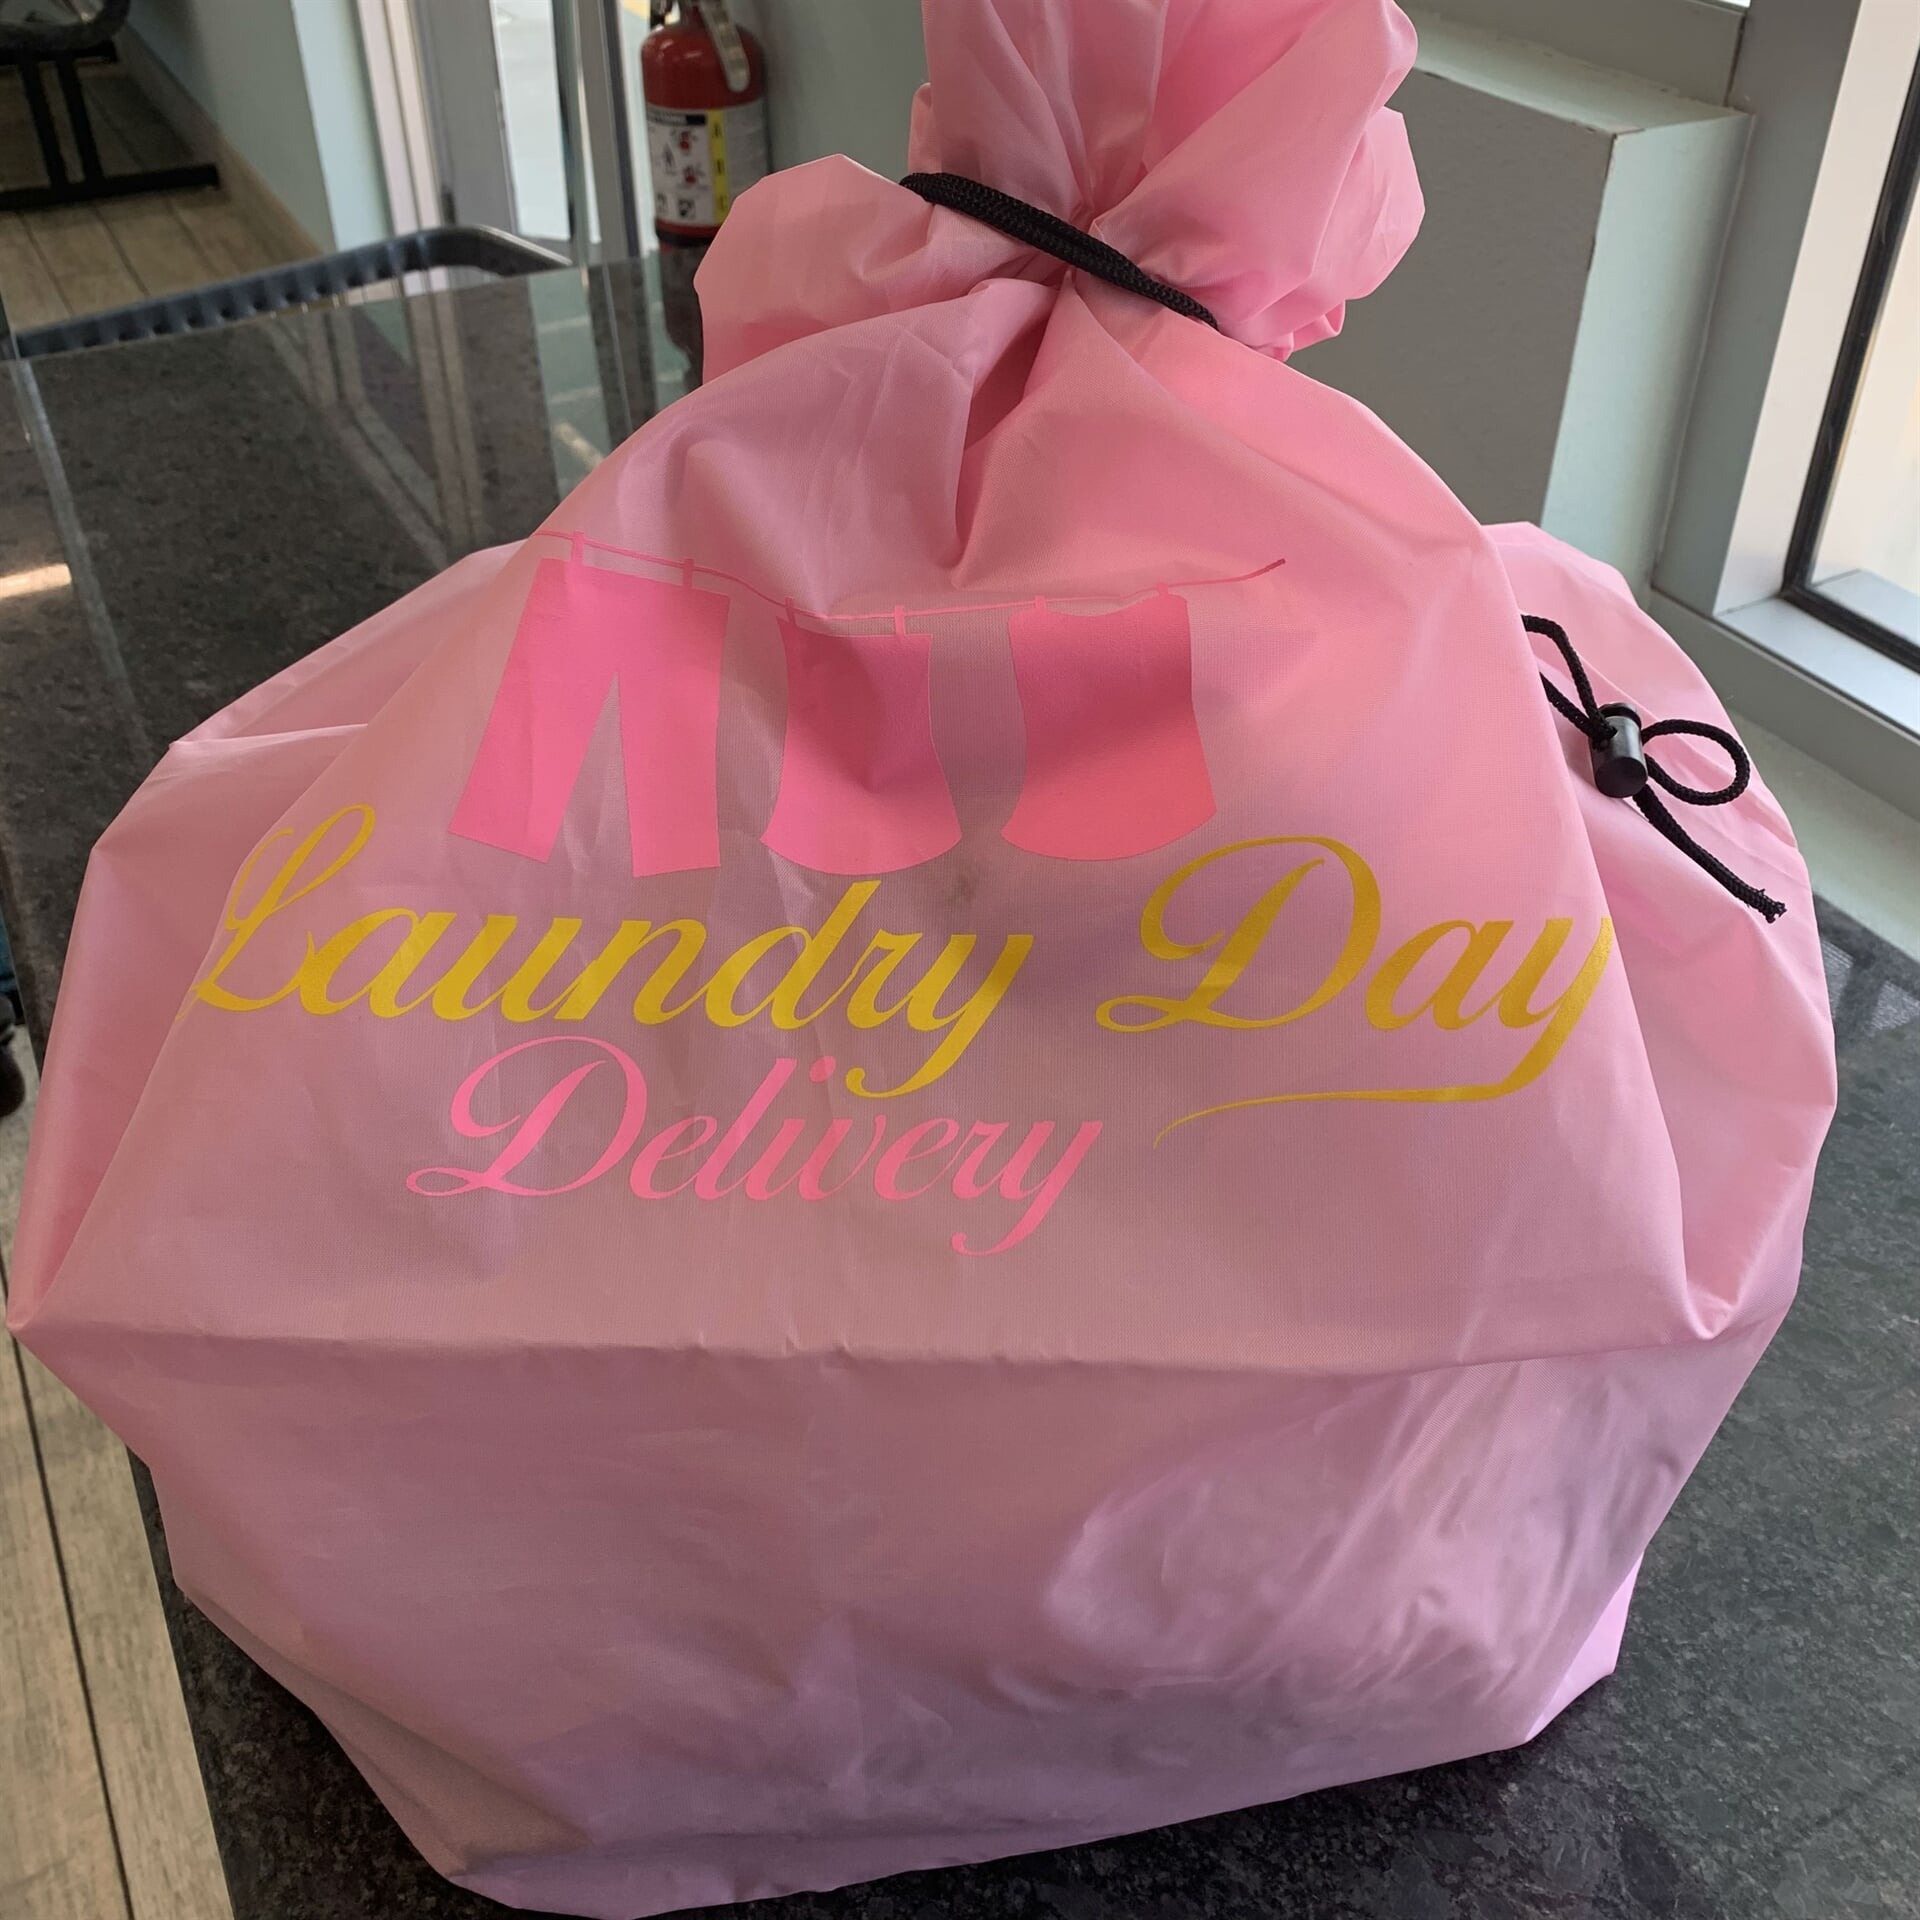 Laundry Day Delivery